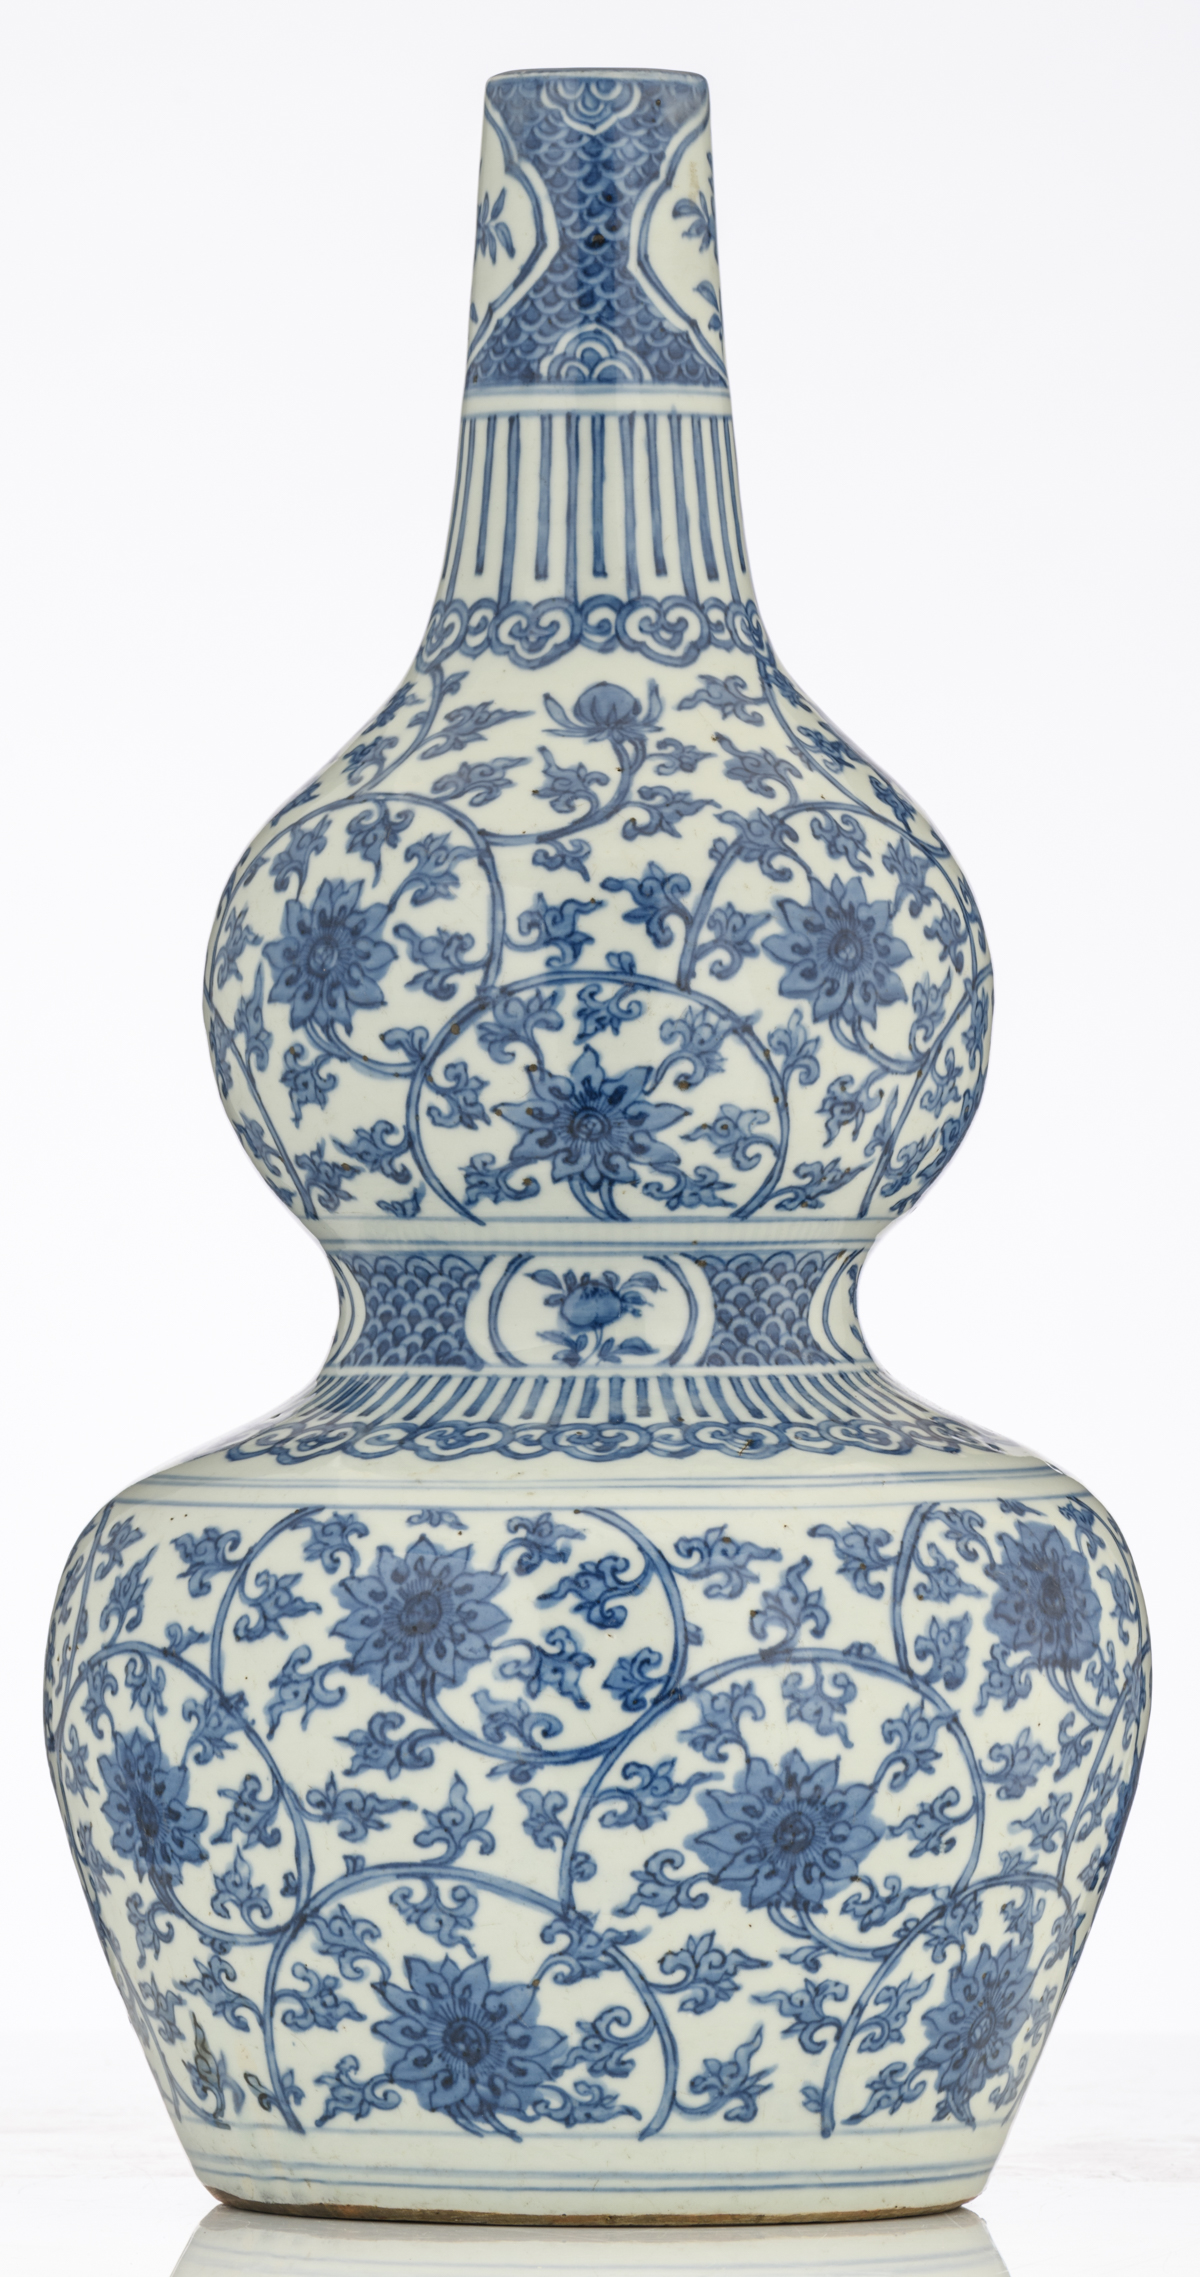 Lot 59 - A large Chinese Ming type blue and white double gourd vase, the bulbs decorated with lotus